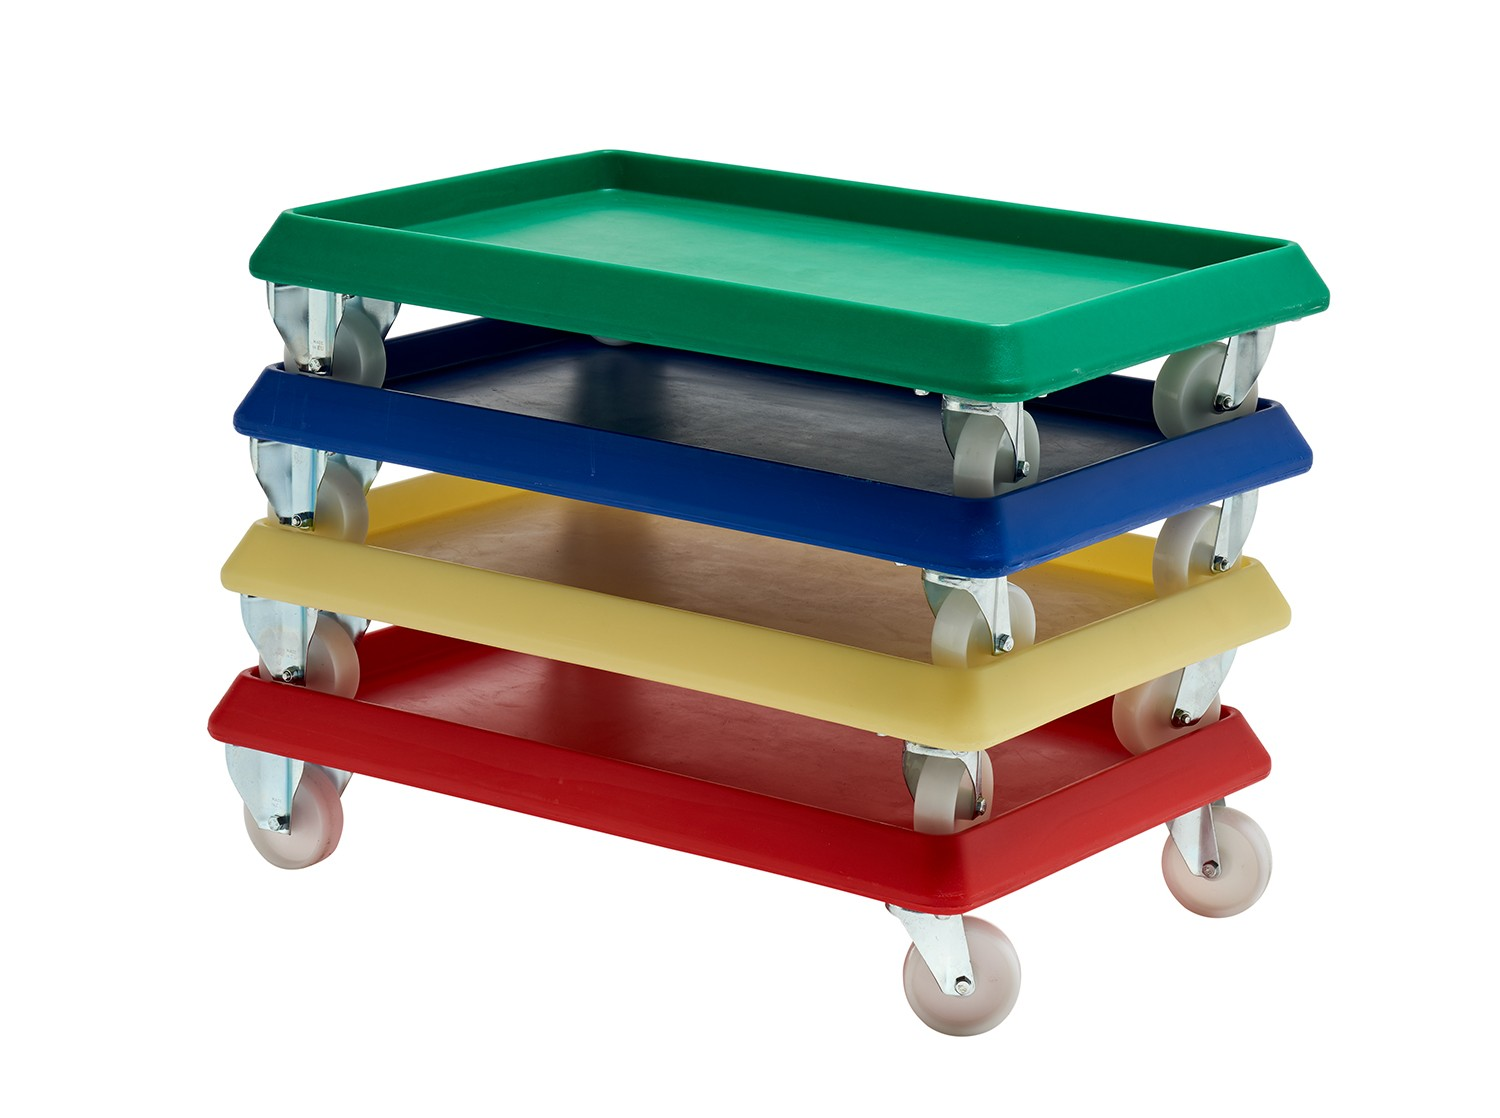 Plastic Dollies Plastic Wheeled Dollies Plastic Crate Dollies Plastic Containers